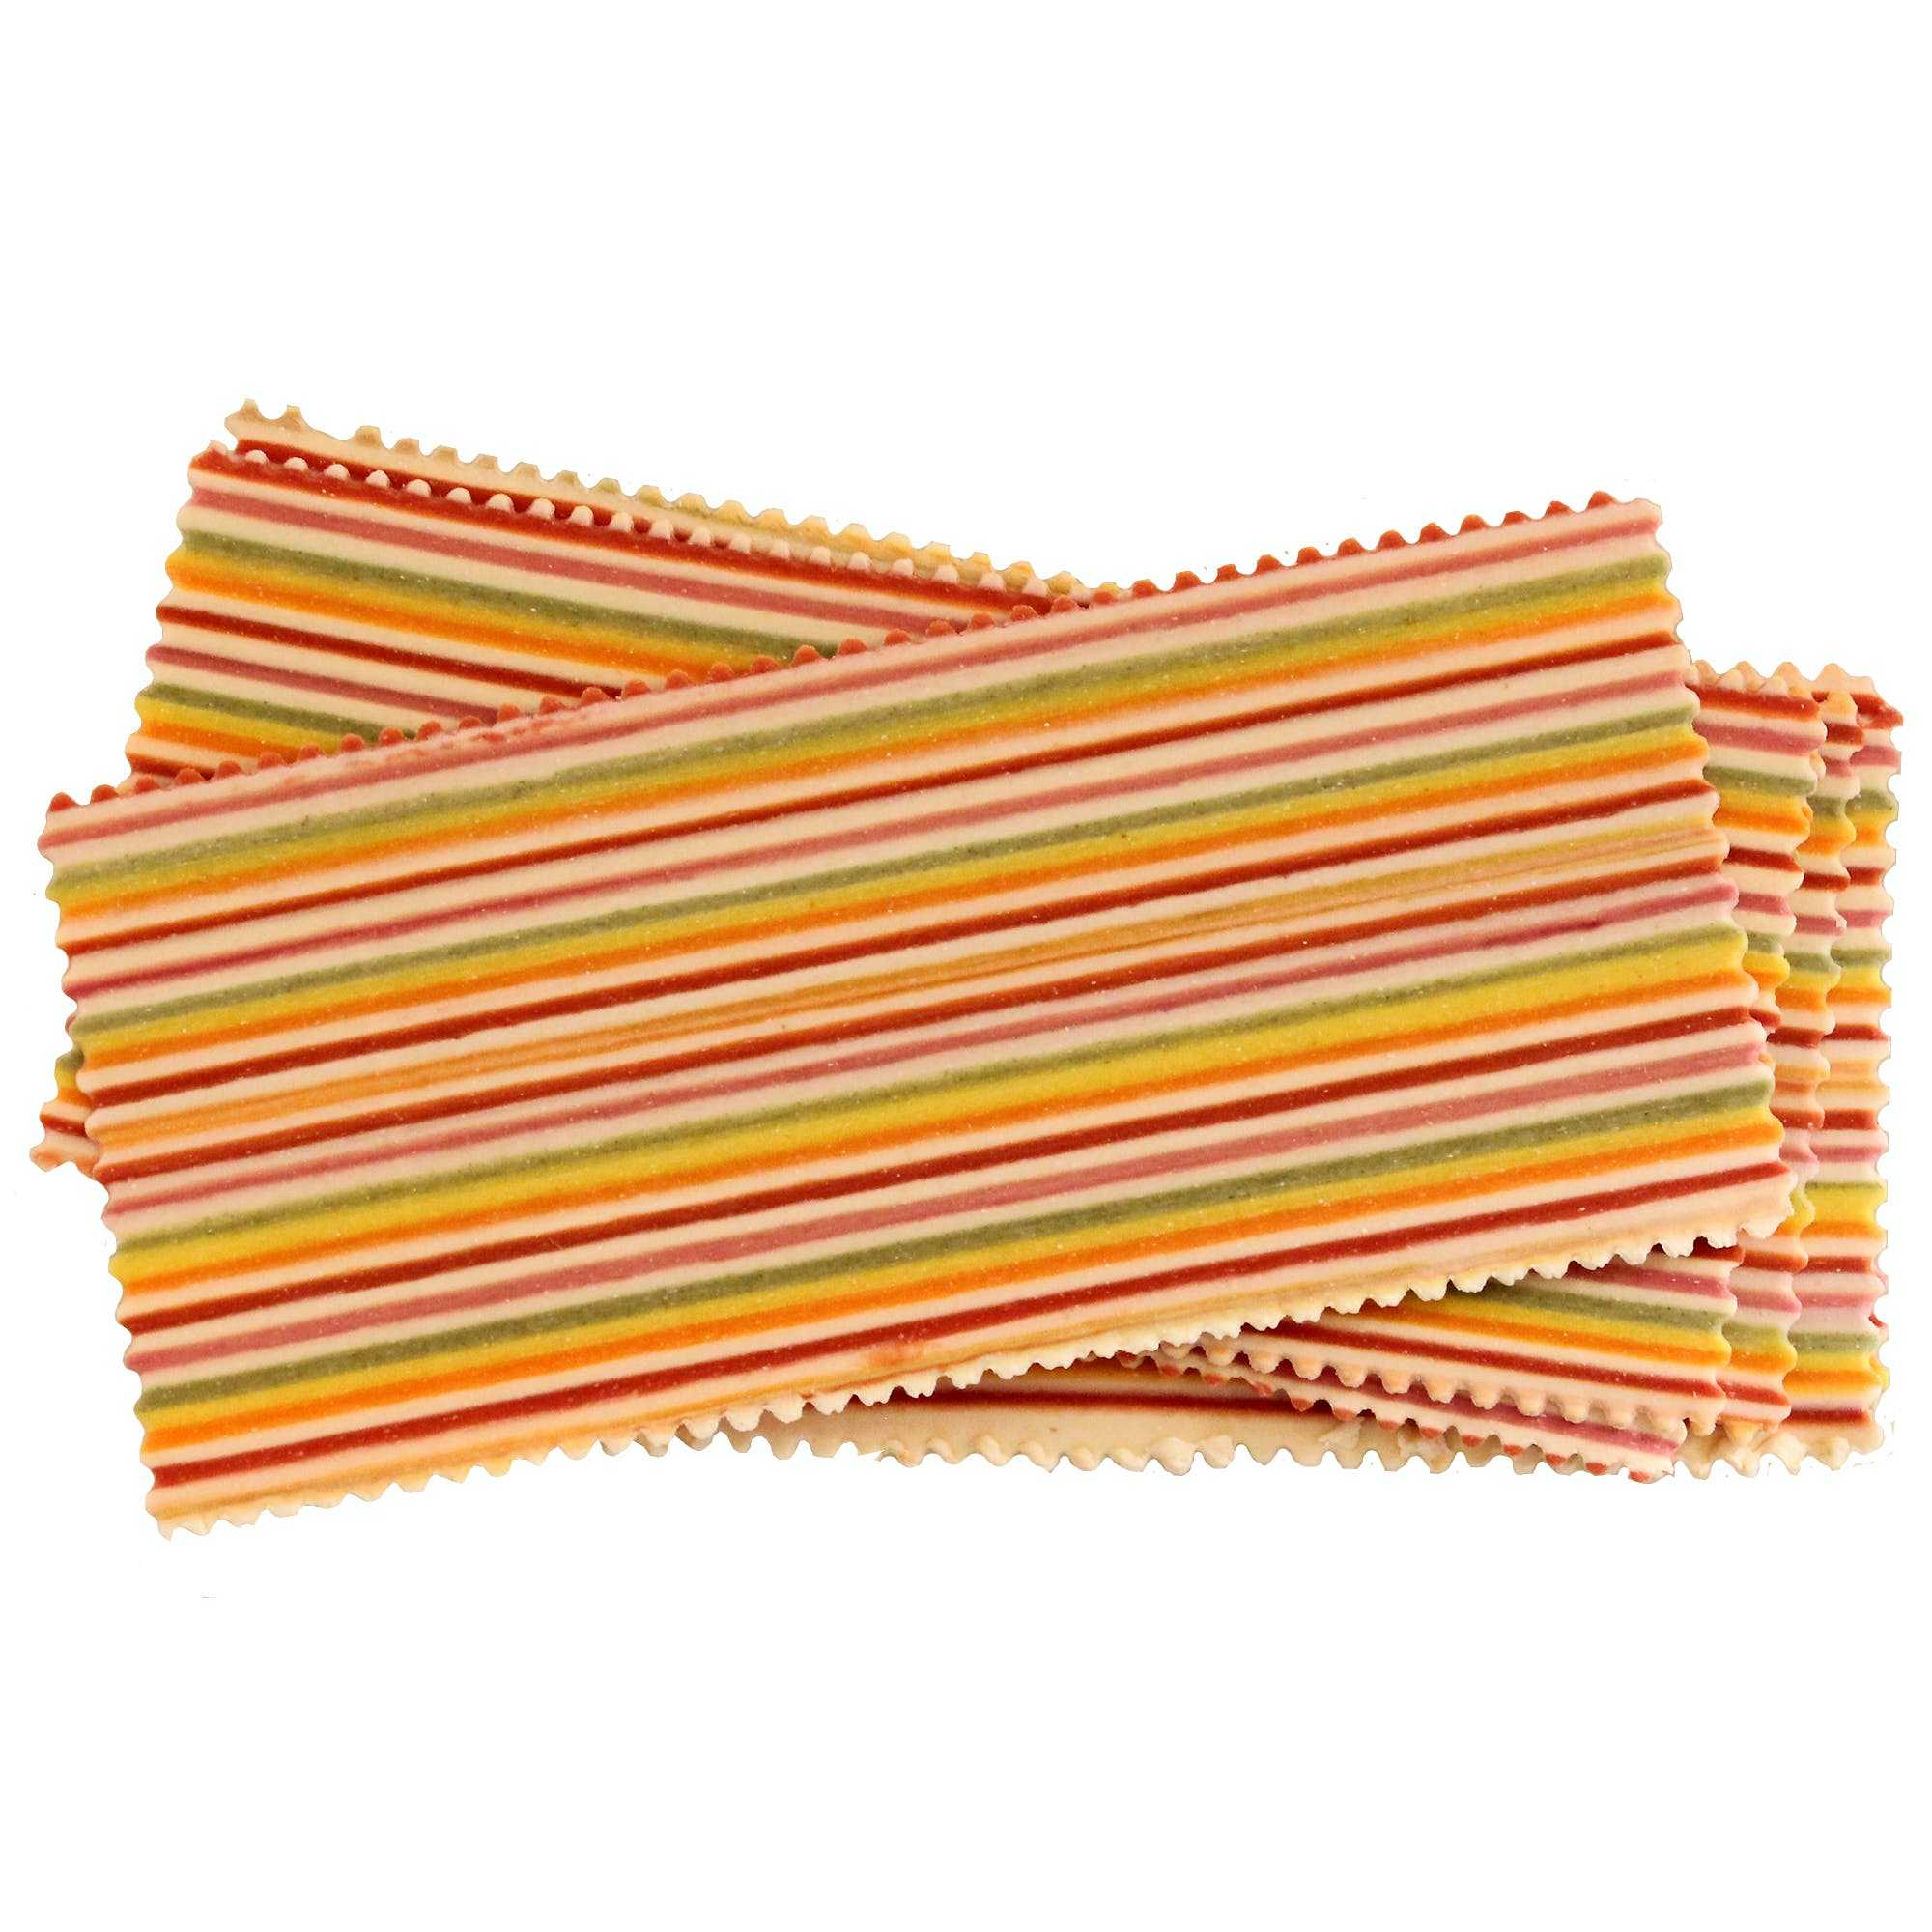 Plaid Colored Lasagna Pasta Pasta sold by M5 Corporation